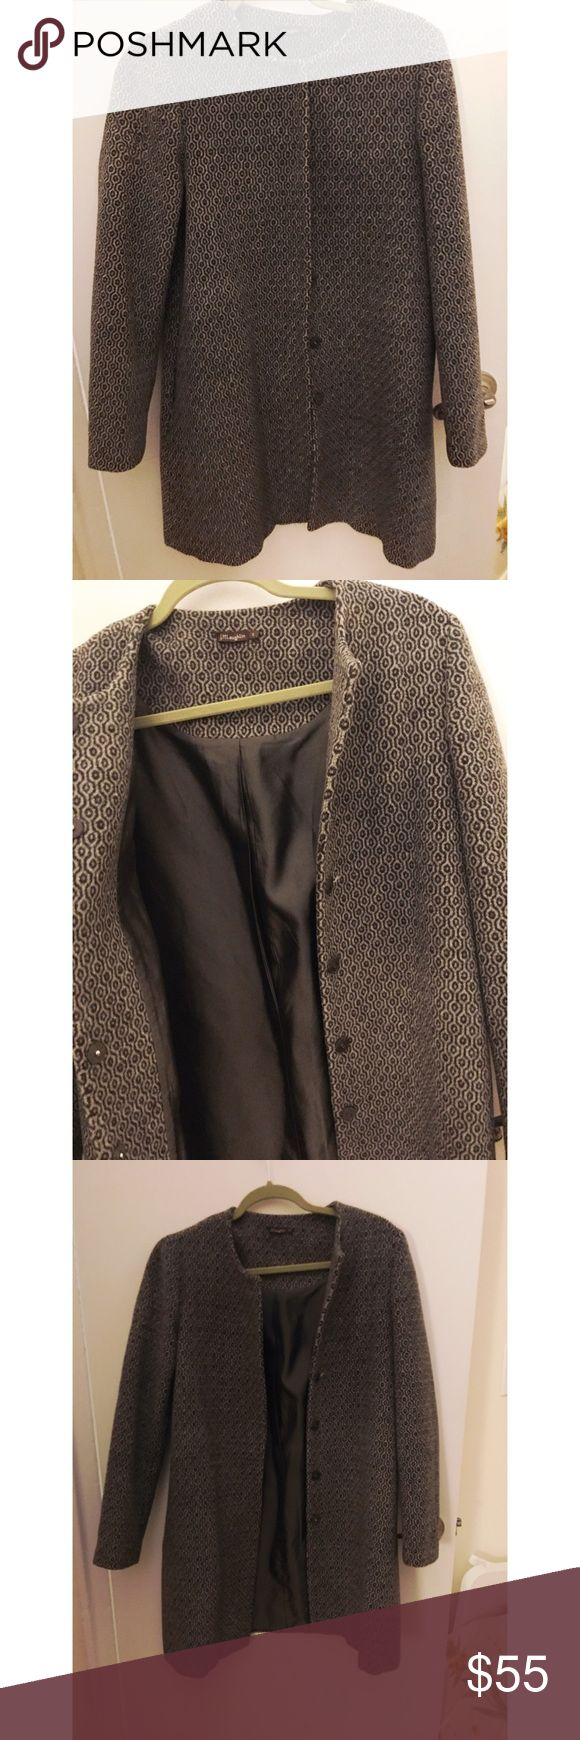 Long wool patterned coat Beautiful warm coat. Similar in style to uniqlo coats- very in style right now. Super expensive originally! Let me know if you have questions! Missing one button easy to repair. Doesn't rlly affect function ability. Reflected in price! J. McLaughlin Jackets & Coats